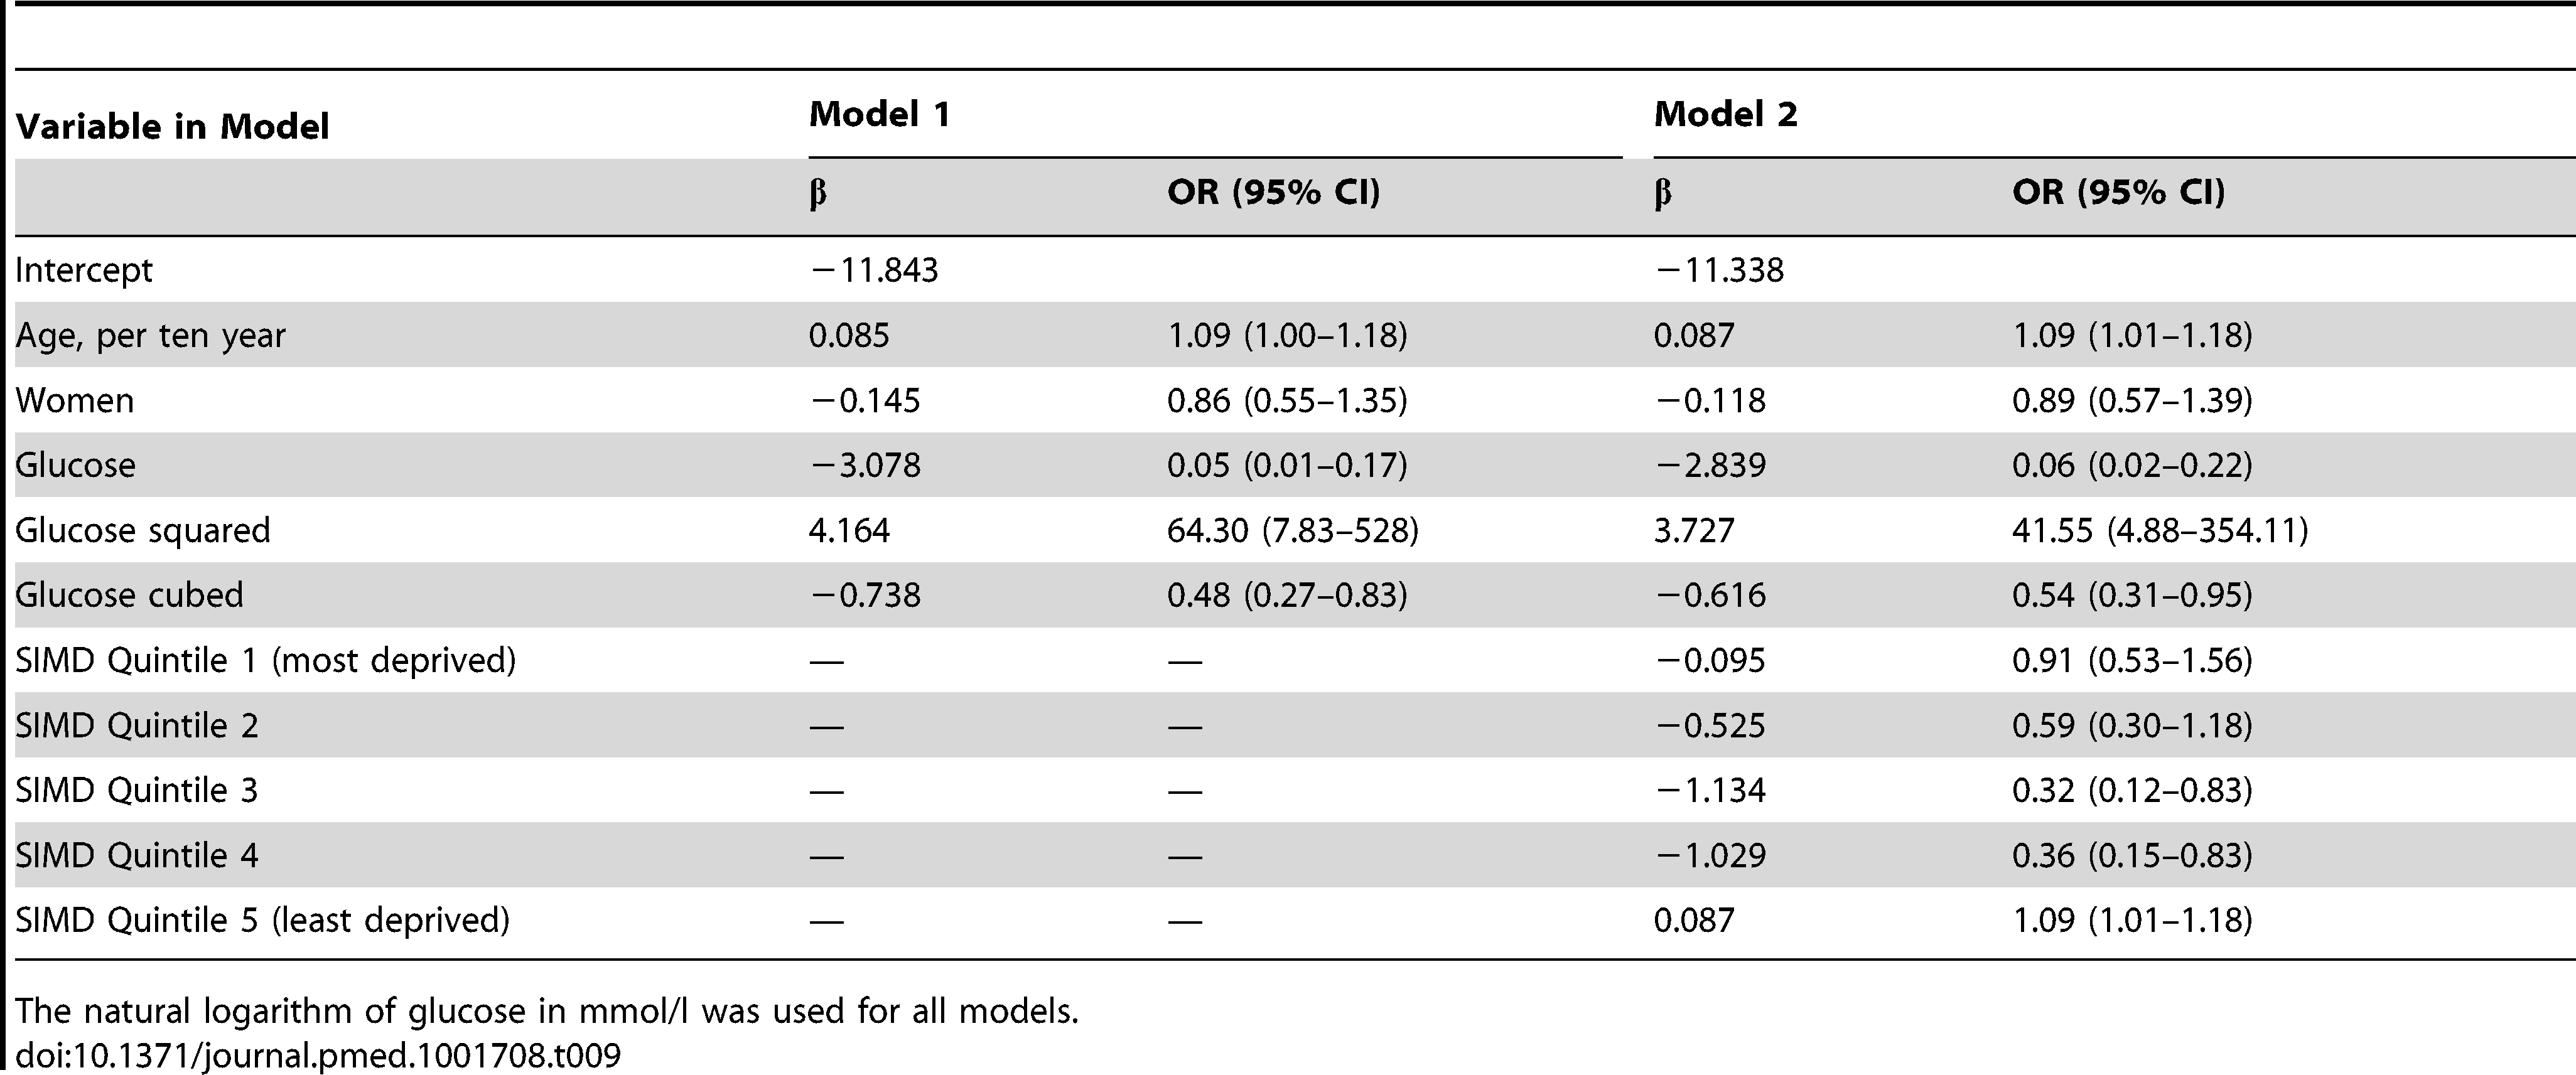 3-year risk of type 2 diabetes by glucose, age, sex, and Scottish Index of Multiple Deprivation (SIMD) score: coefficients and odds ratios from logistic regression models for patients aged 30–39.